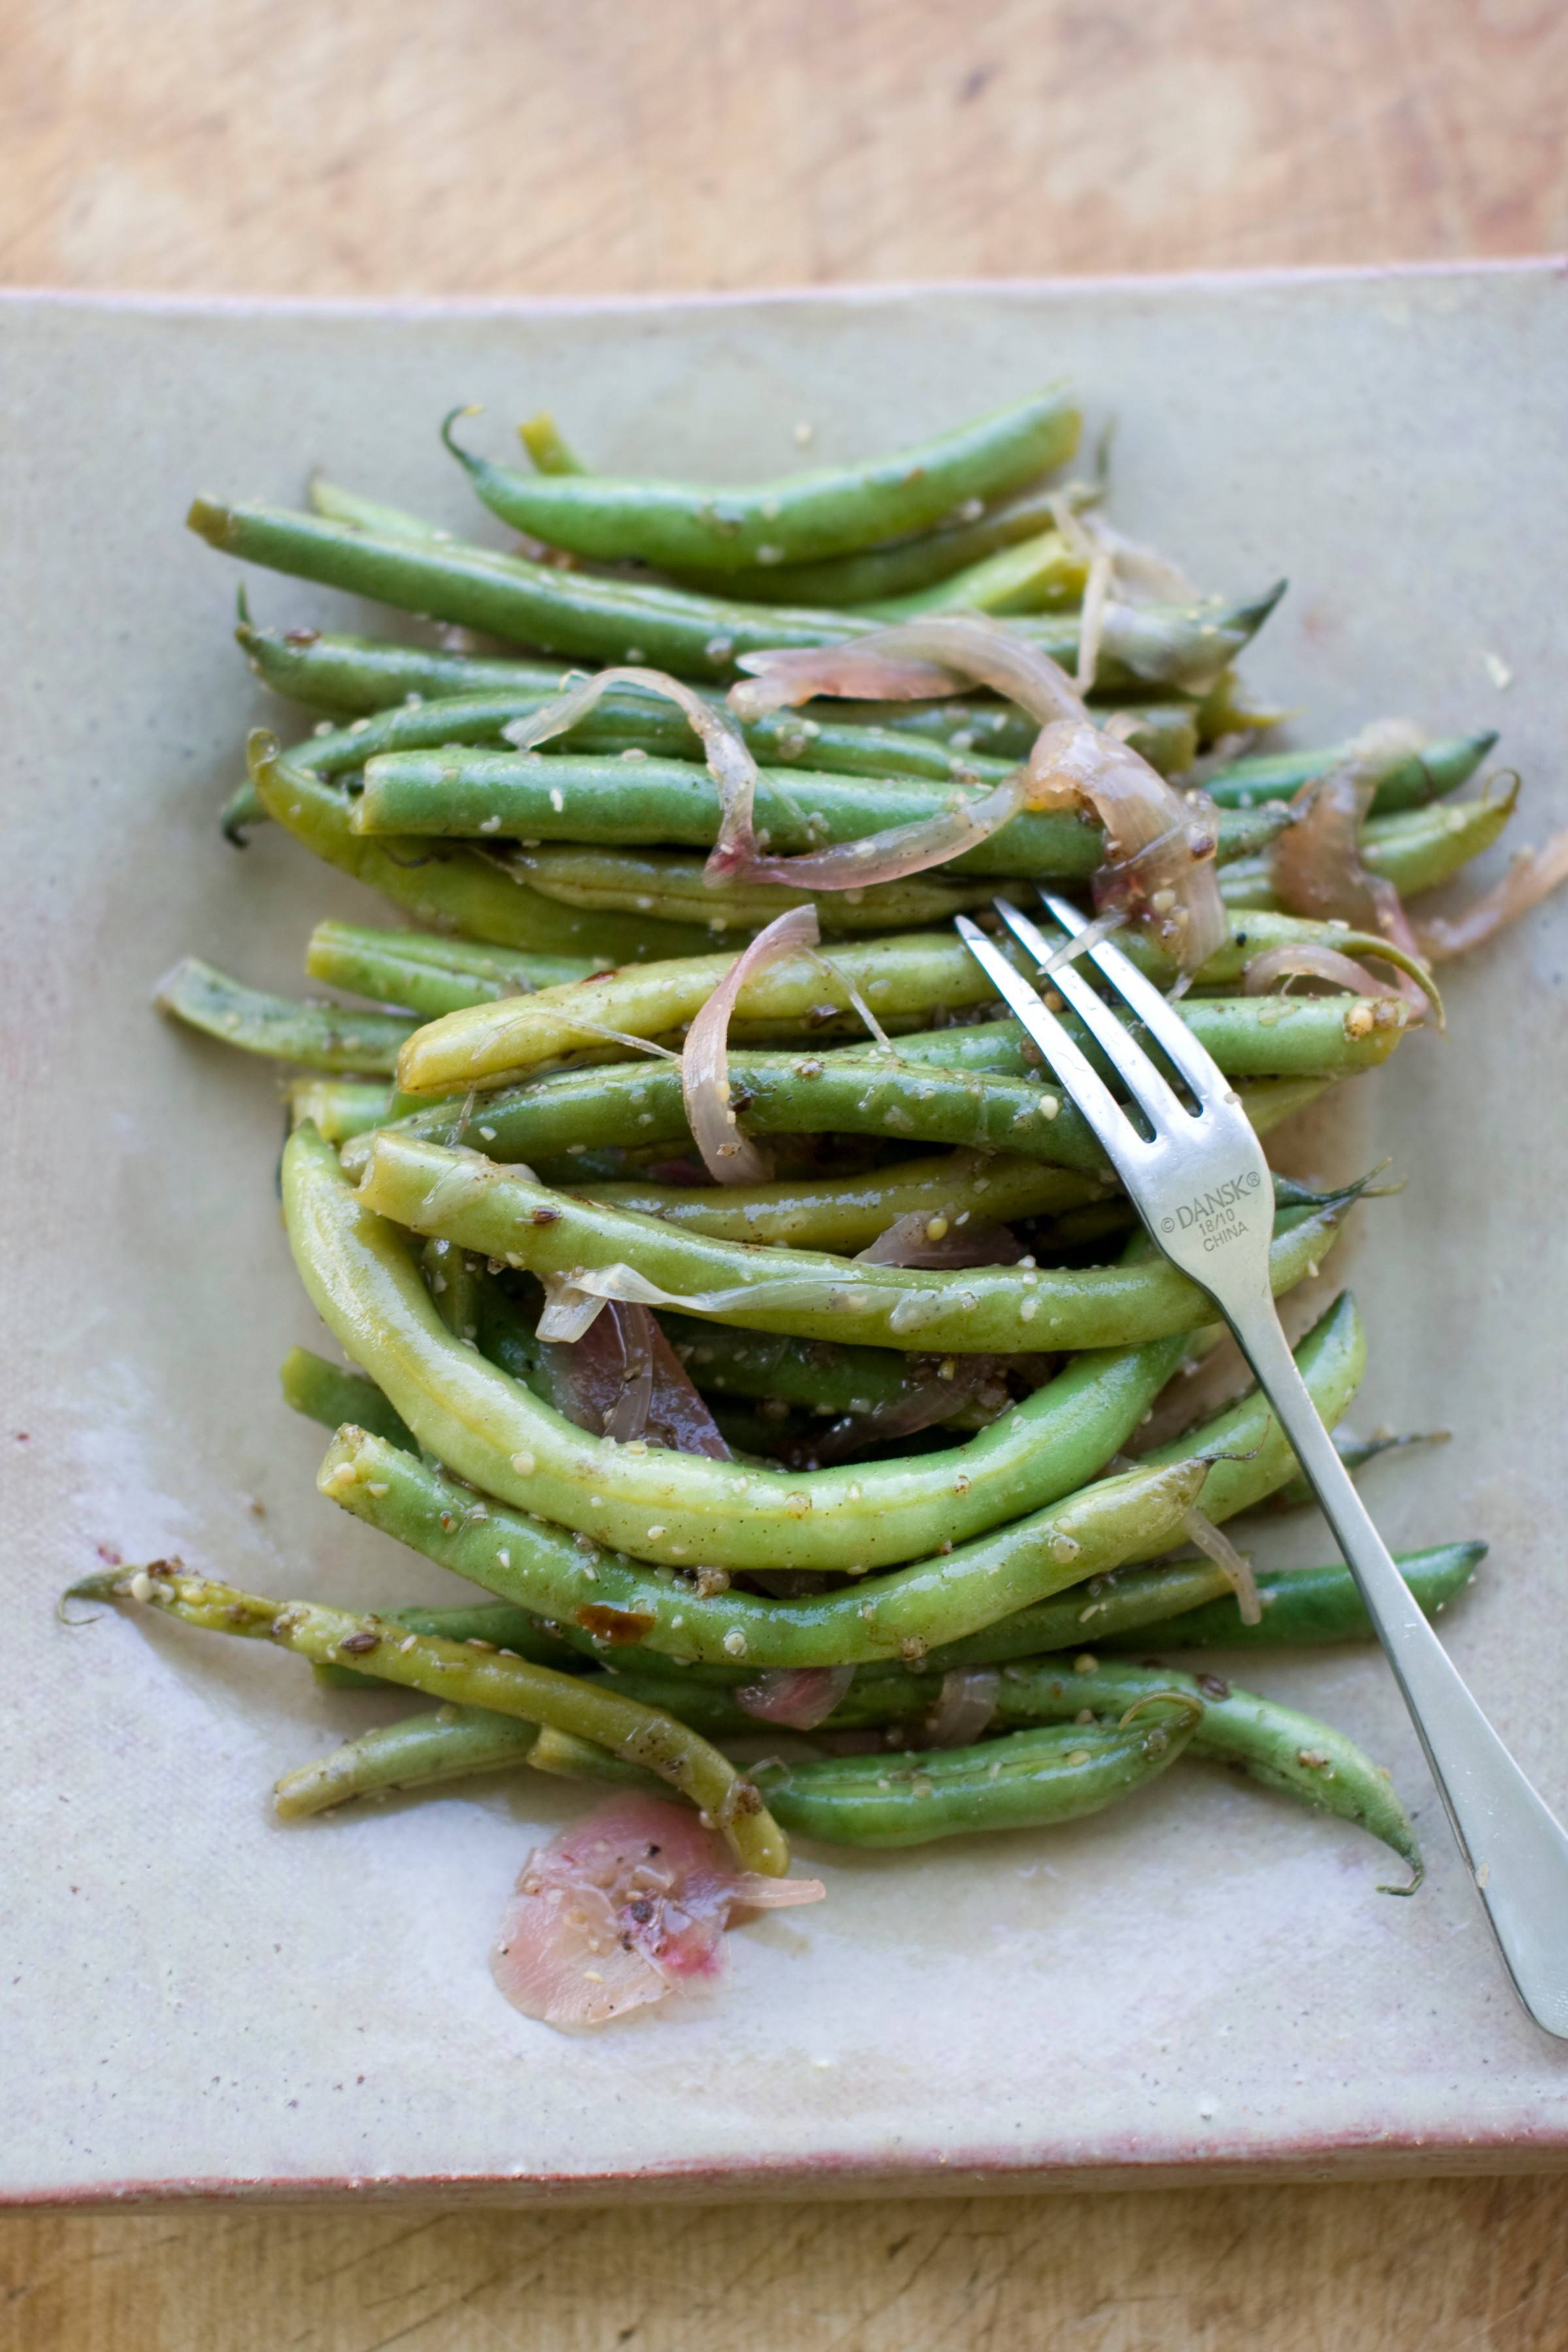 Fast-Pickled Green Beans